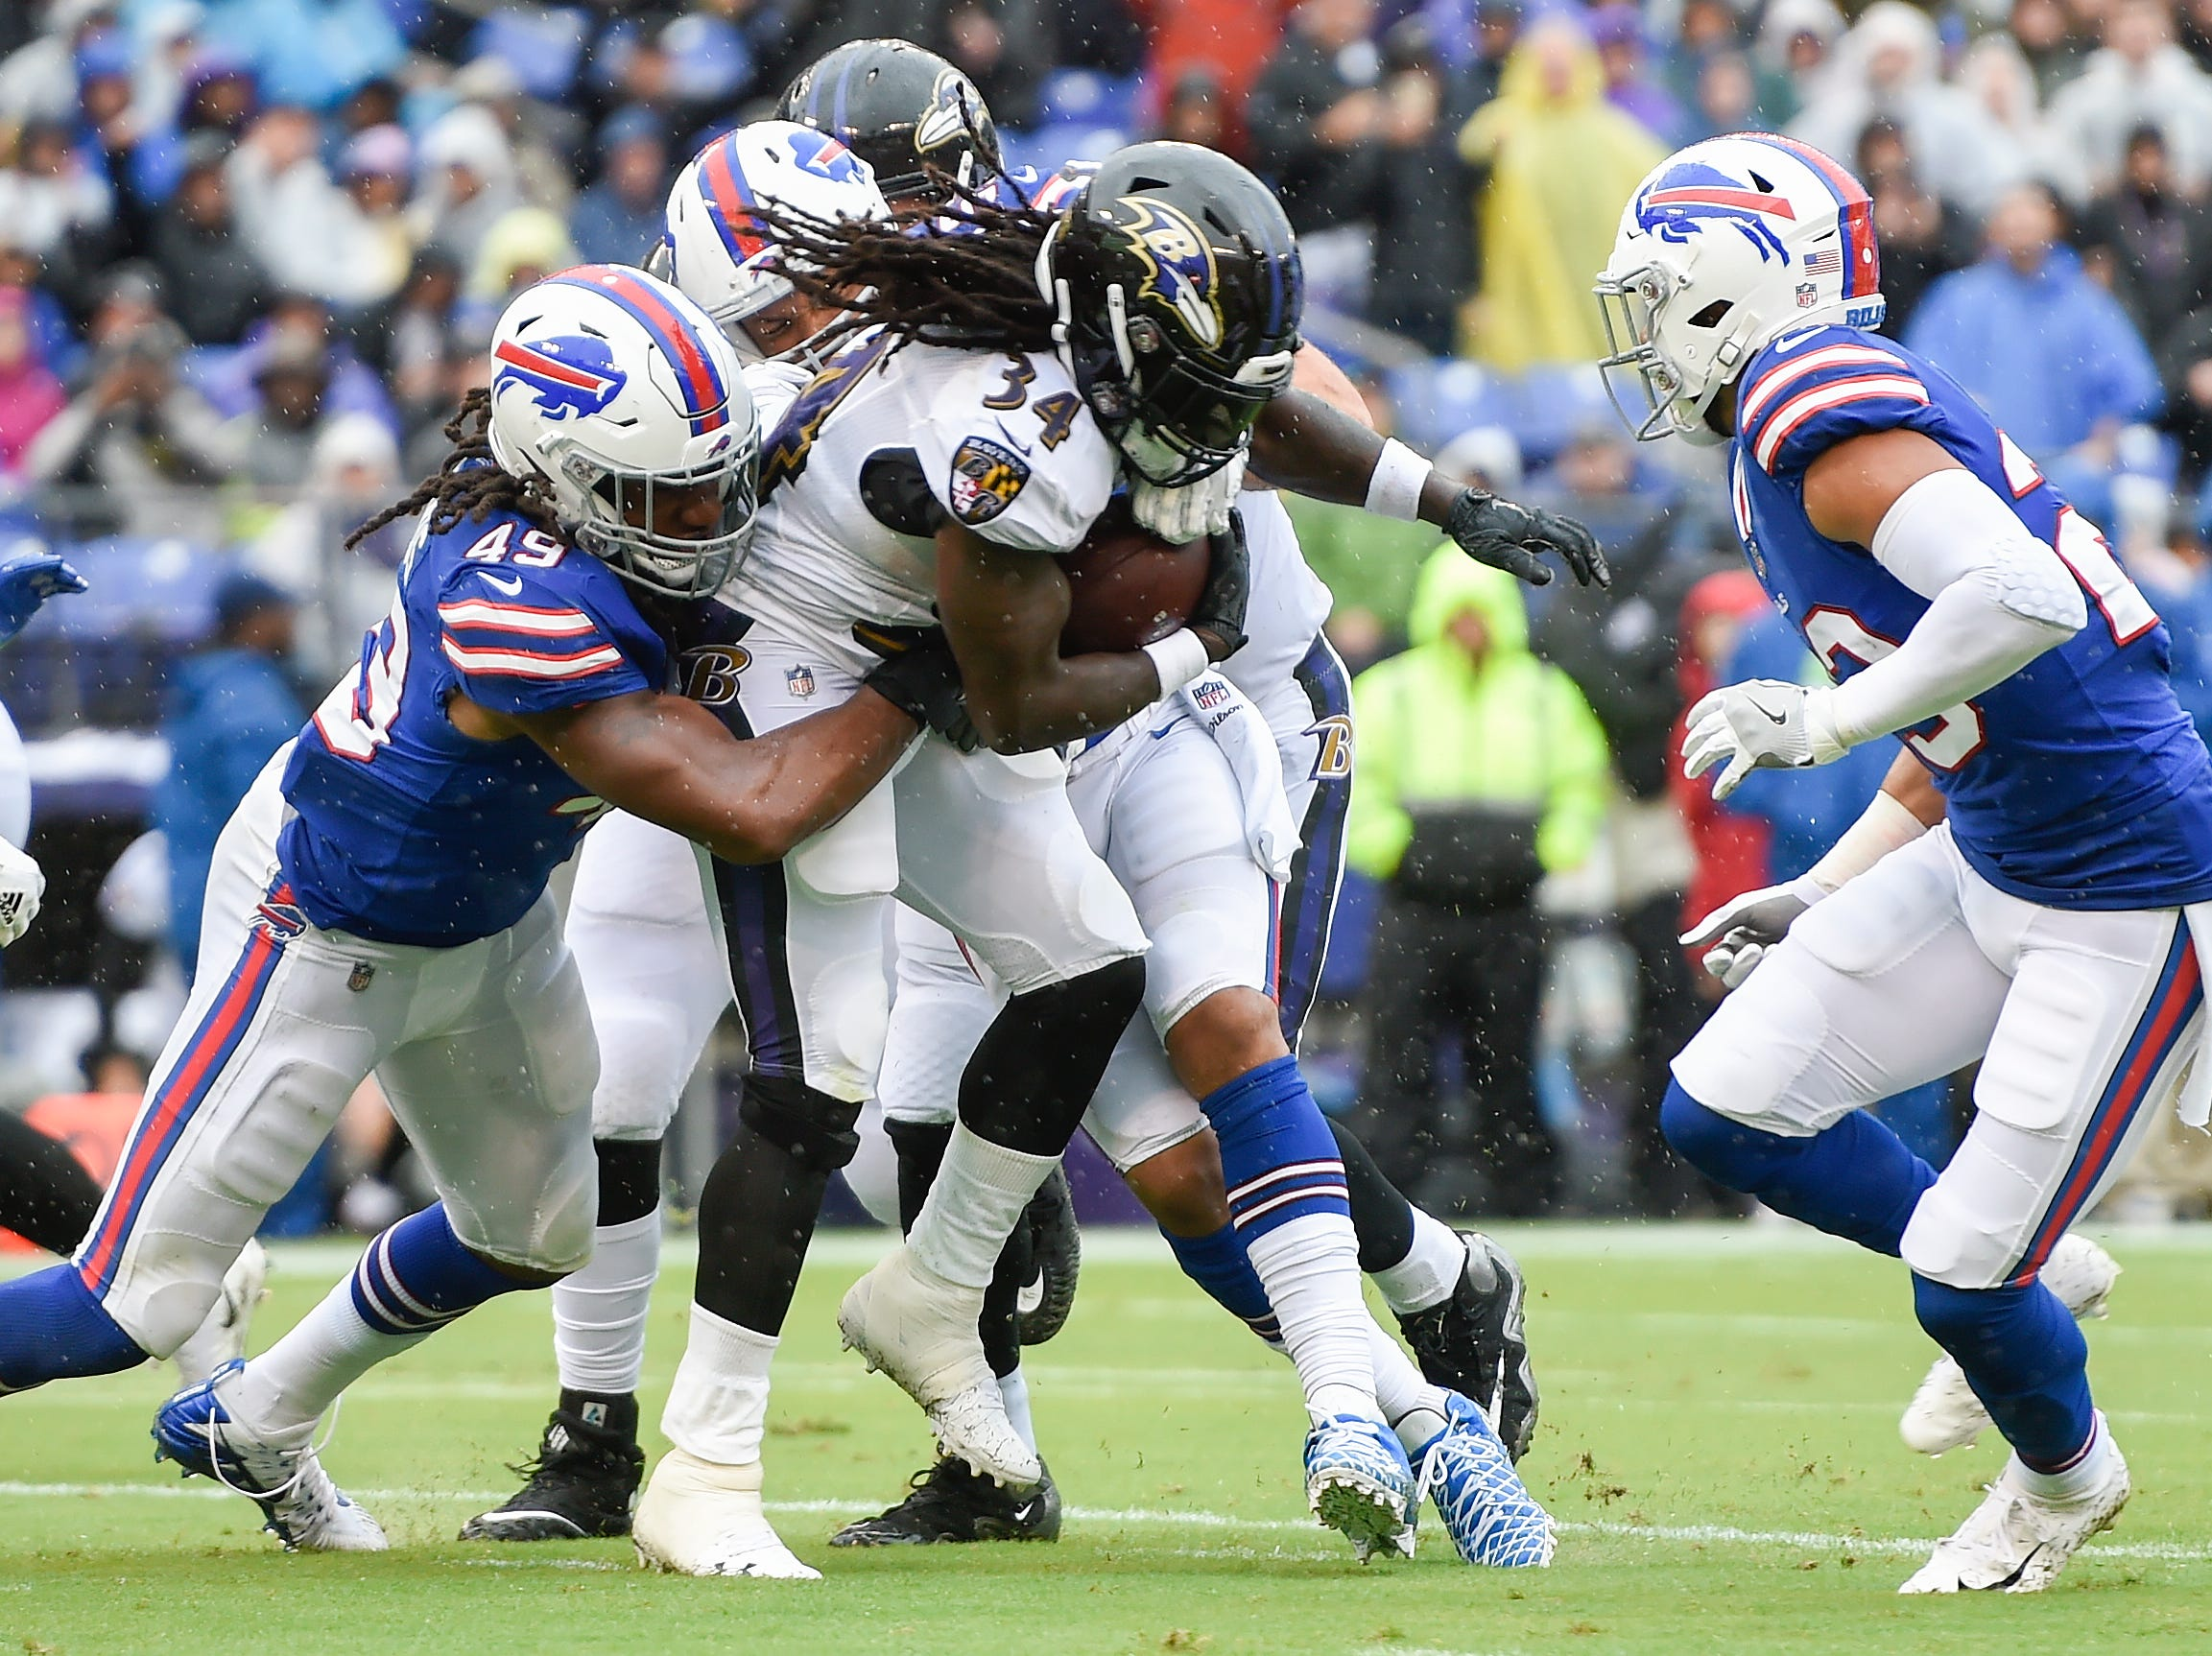 Buffalo Bills linebacker Tremaine Edmunds (49) hangs onto Baltimore Ravens running back Alex Collins (34) who carries the ball toward the end zone for a touchdown during the first half of an NFL football game Sunday, Sept. 9, 2018 in Baltimore. (AP Photo/Gail Burton)